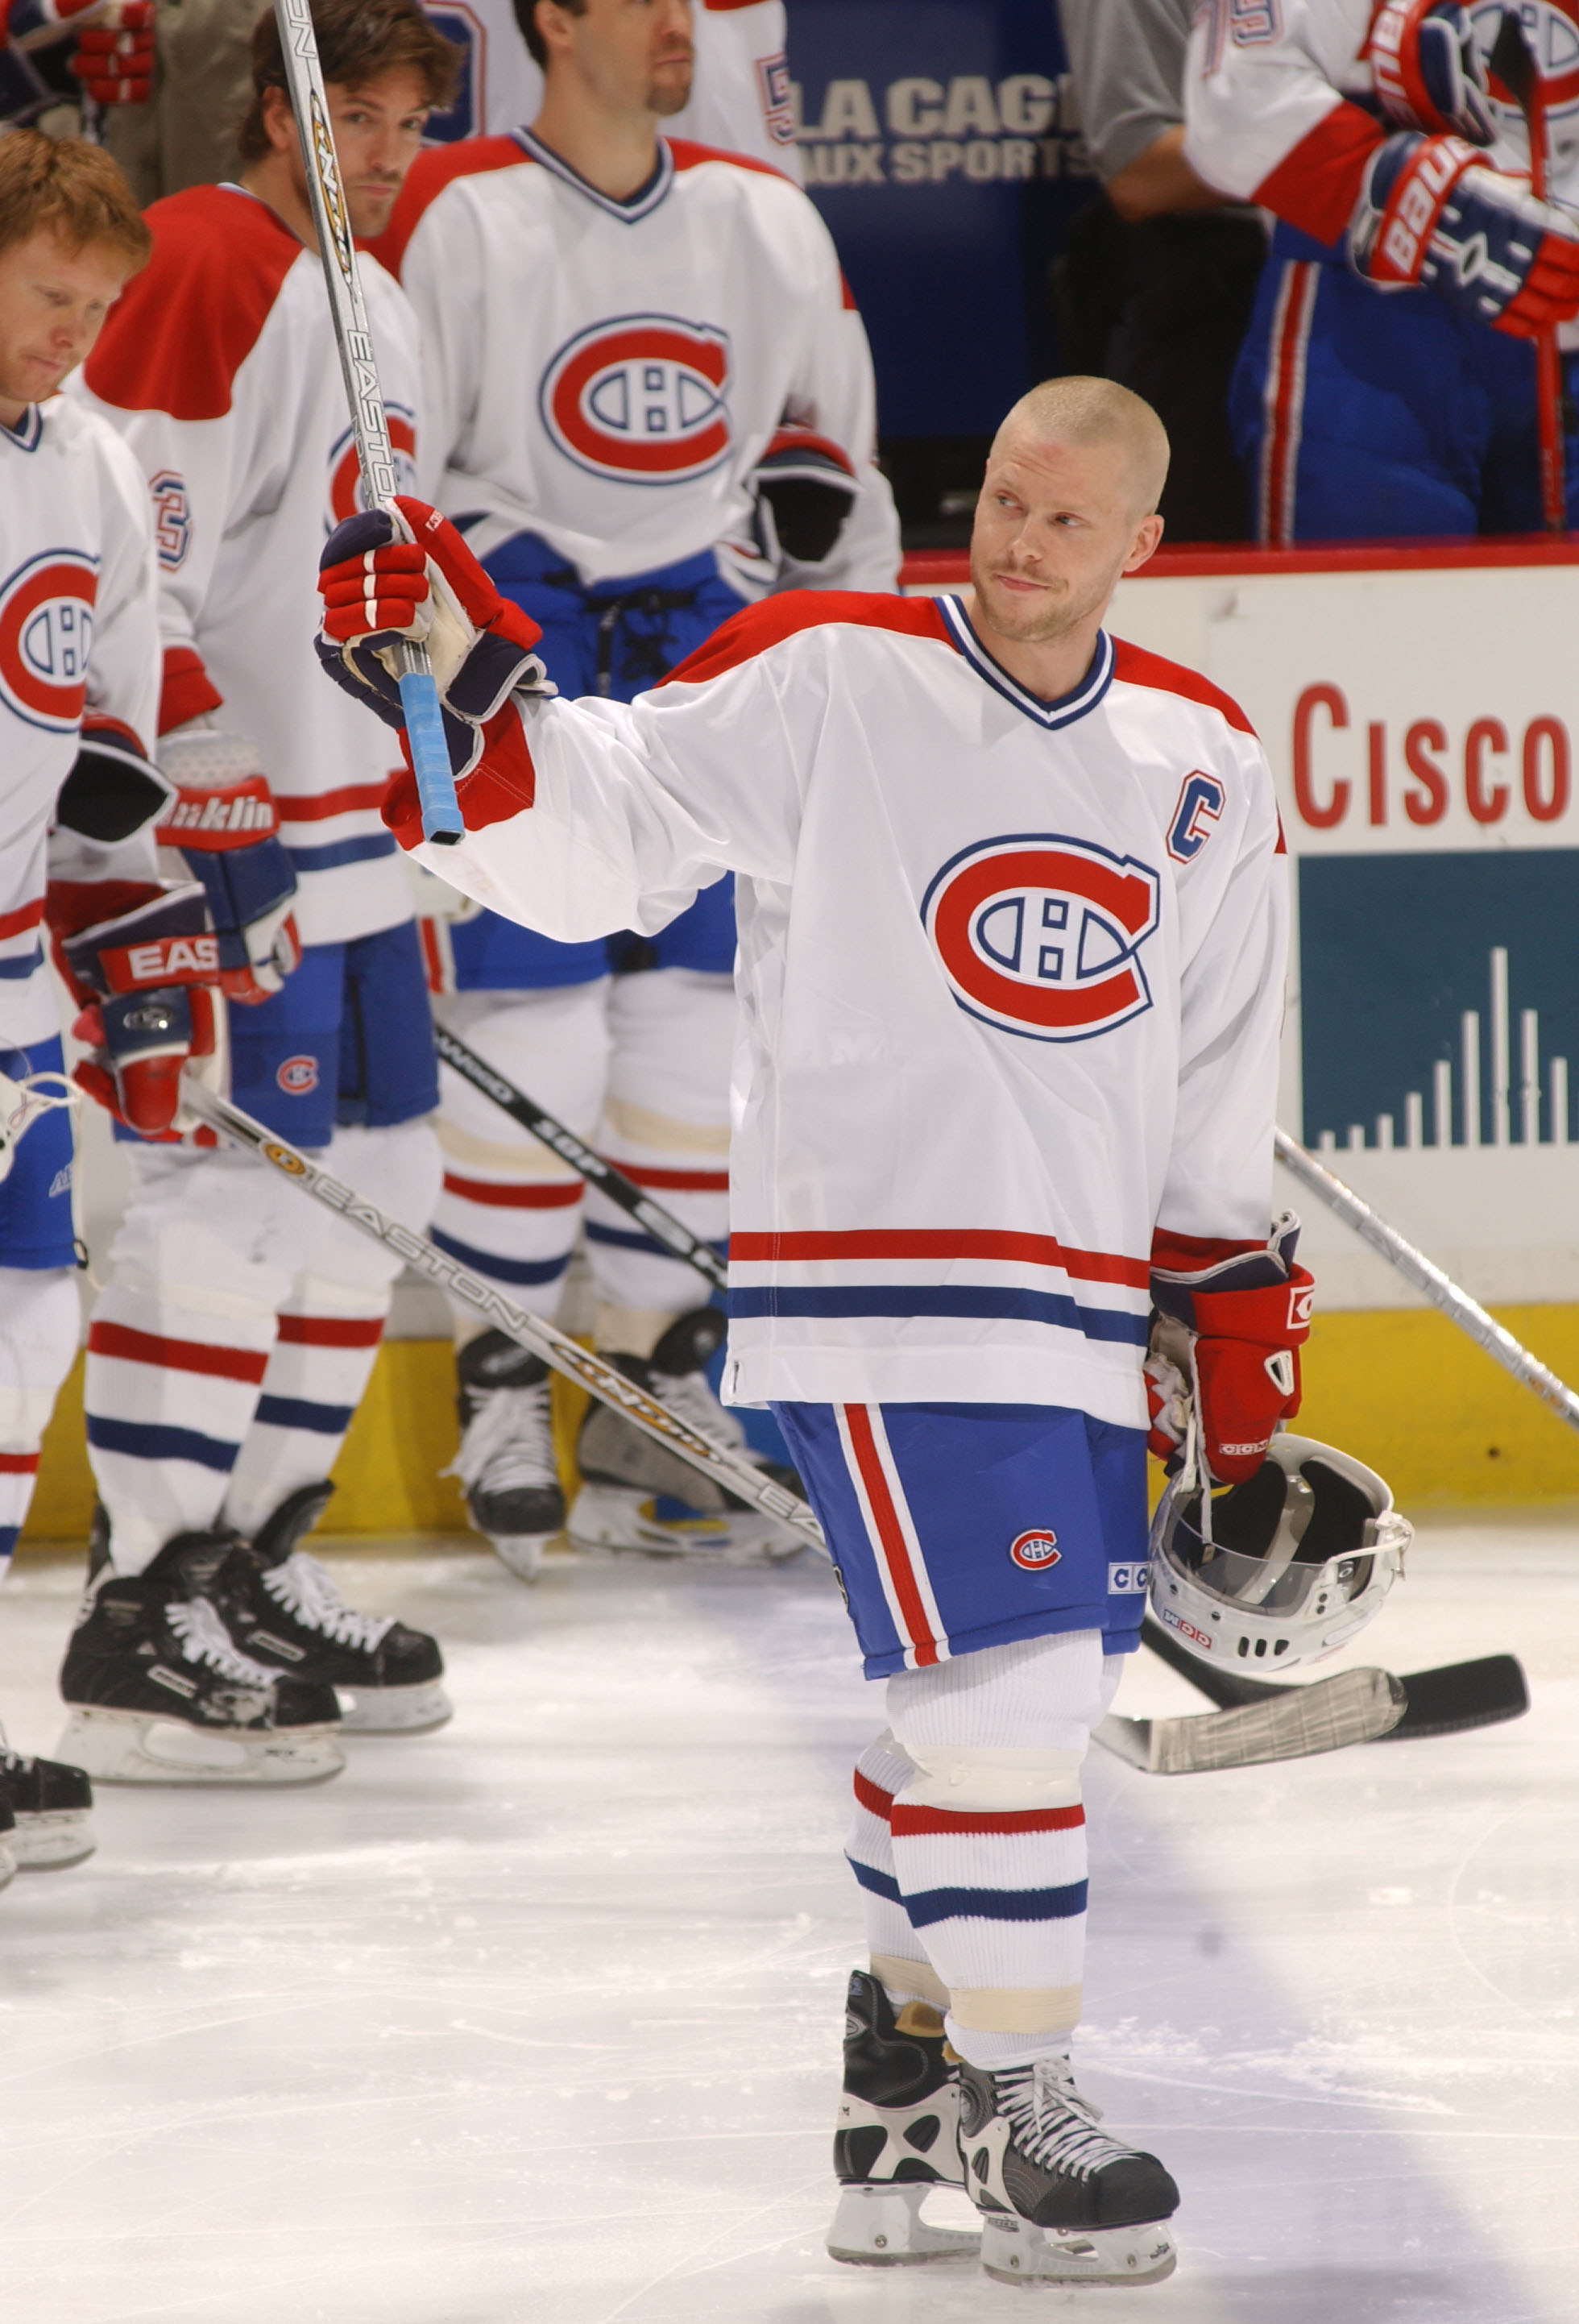 9 Apr 2002:  Saku Koivu #11 of the Montreal Canadiens waves to the crowd as he recieves a standing ovation at the start of the game against the Ottowa Senators at the Molson Centre in Montreal, Canada. DIGITAL IMAGE Mandatory credit: Dave Sandford/GettyIm